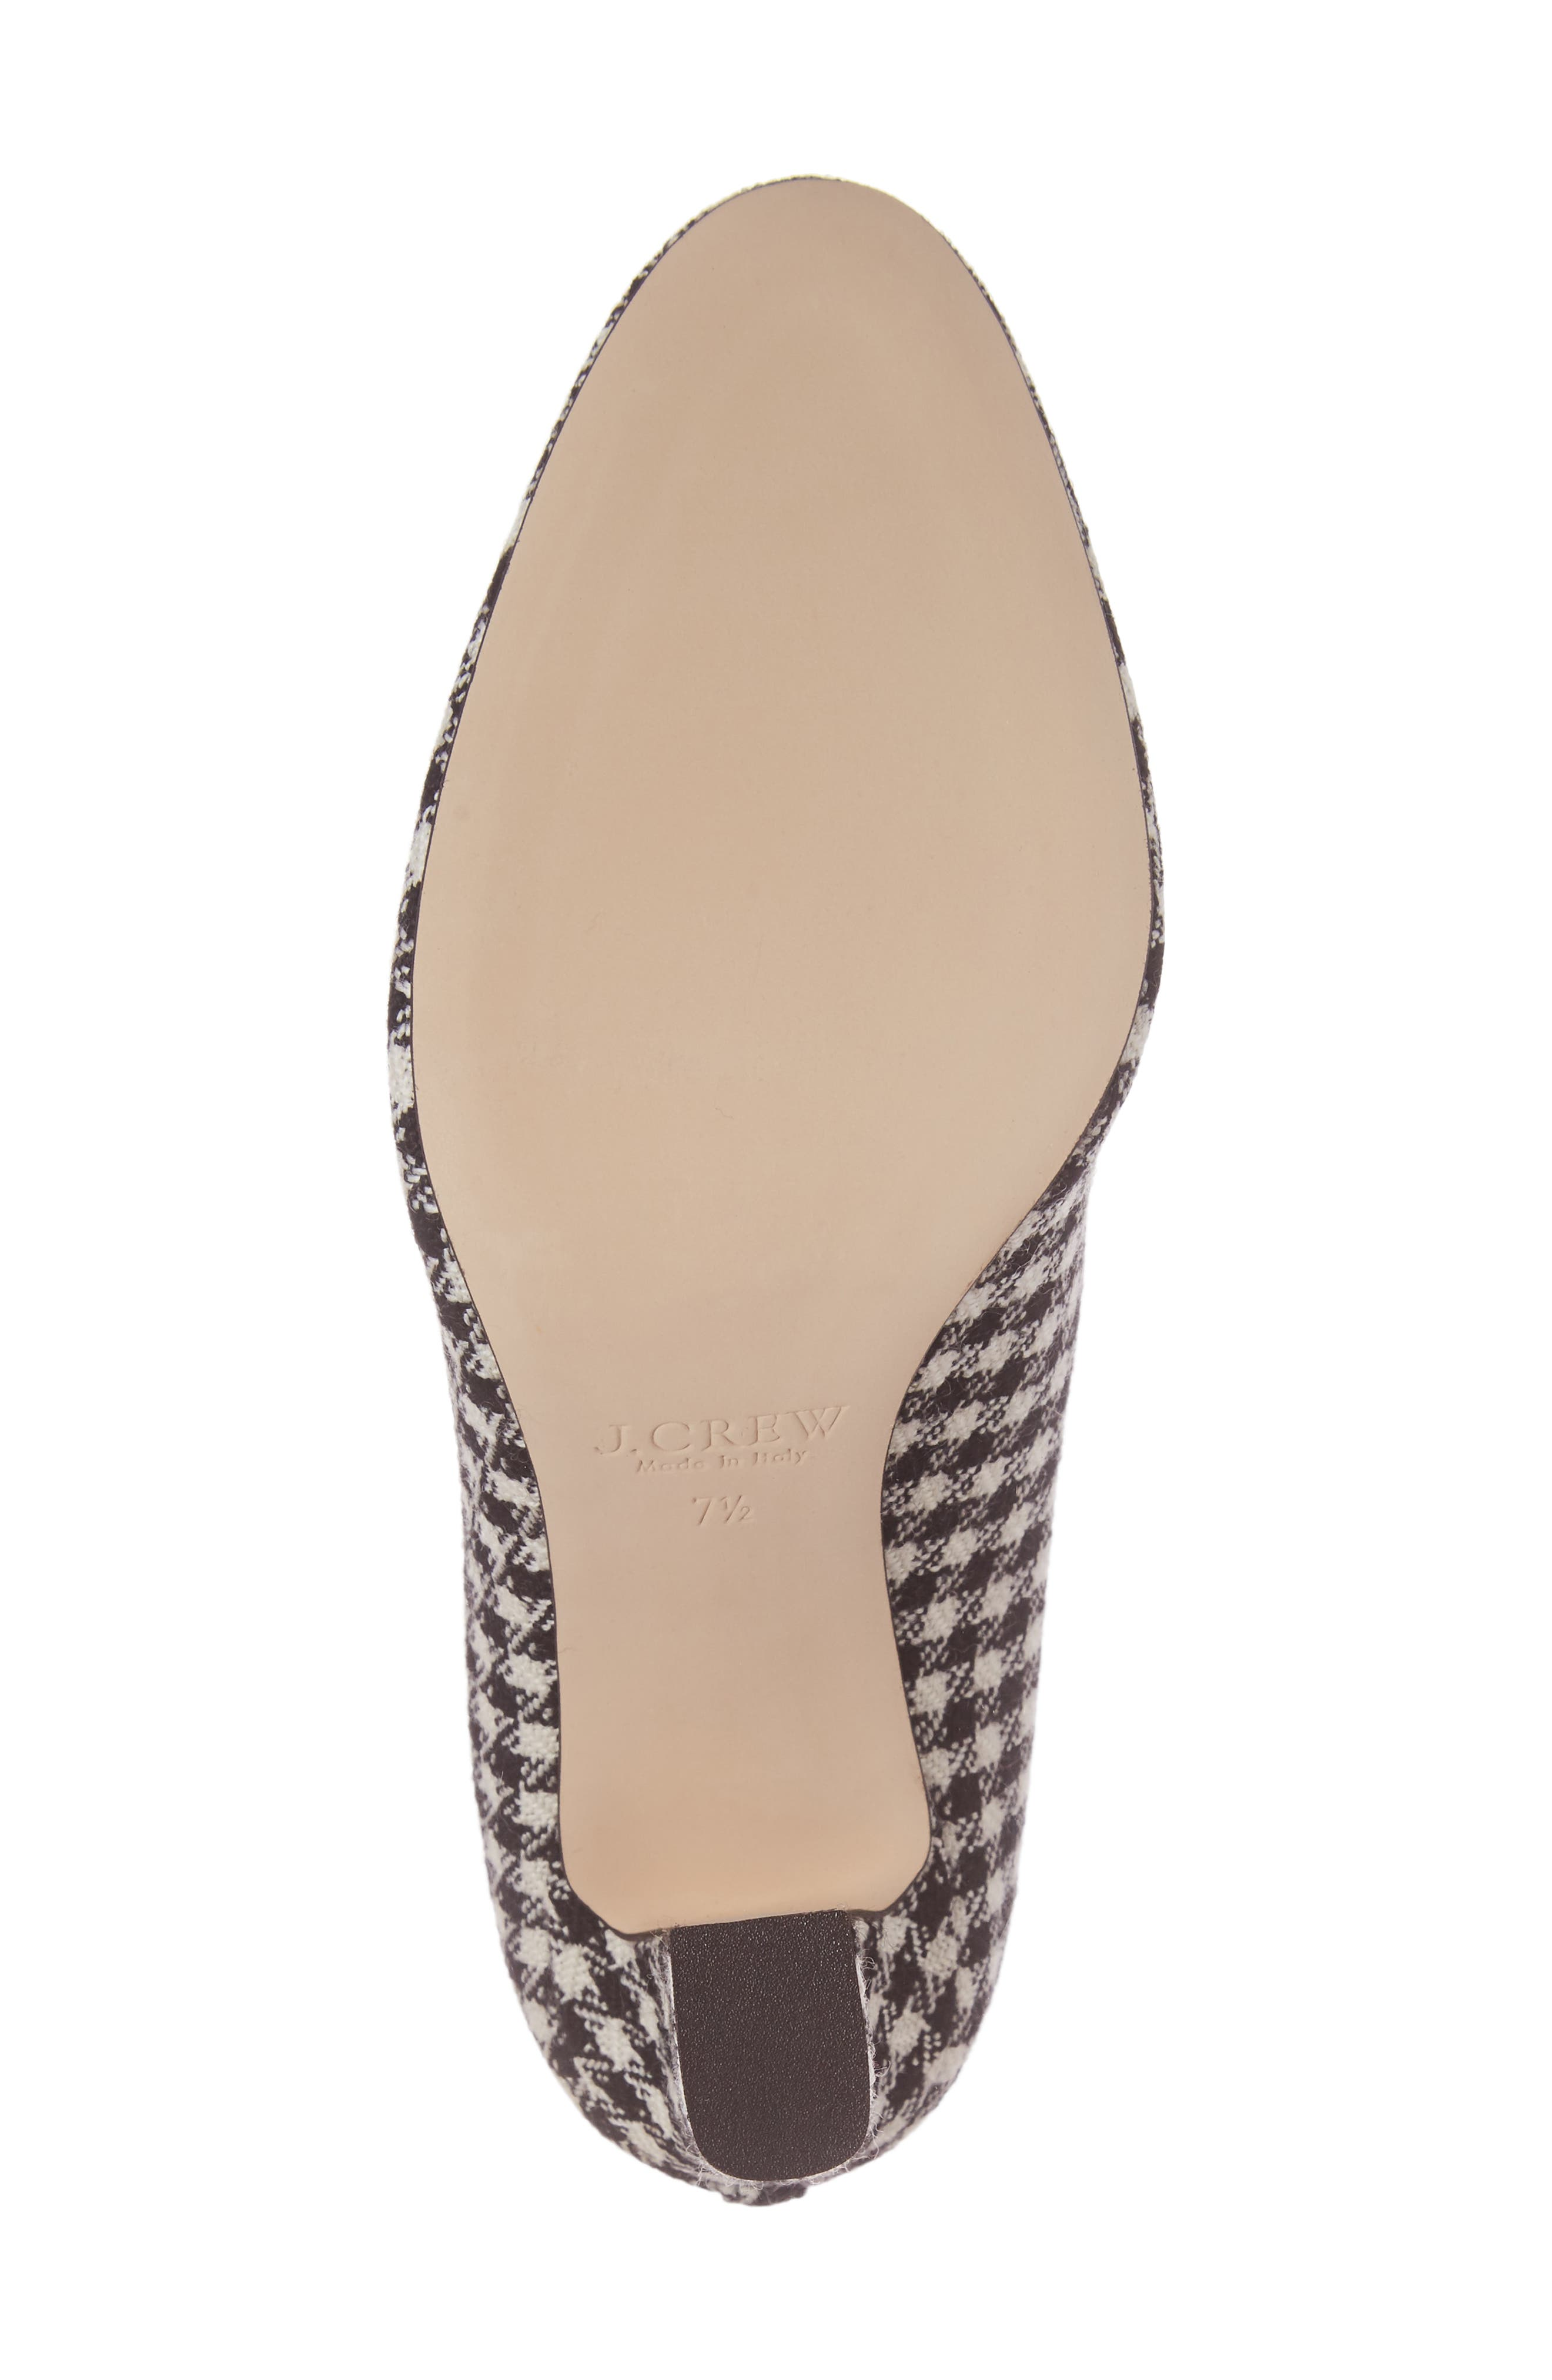 J. Crew Bell Ankle Tie Pump,                             Alternate thumbnail 6, color,                             Black/ Ivory Fabric